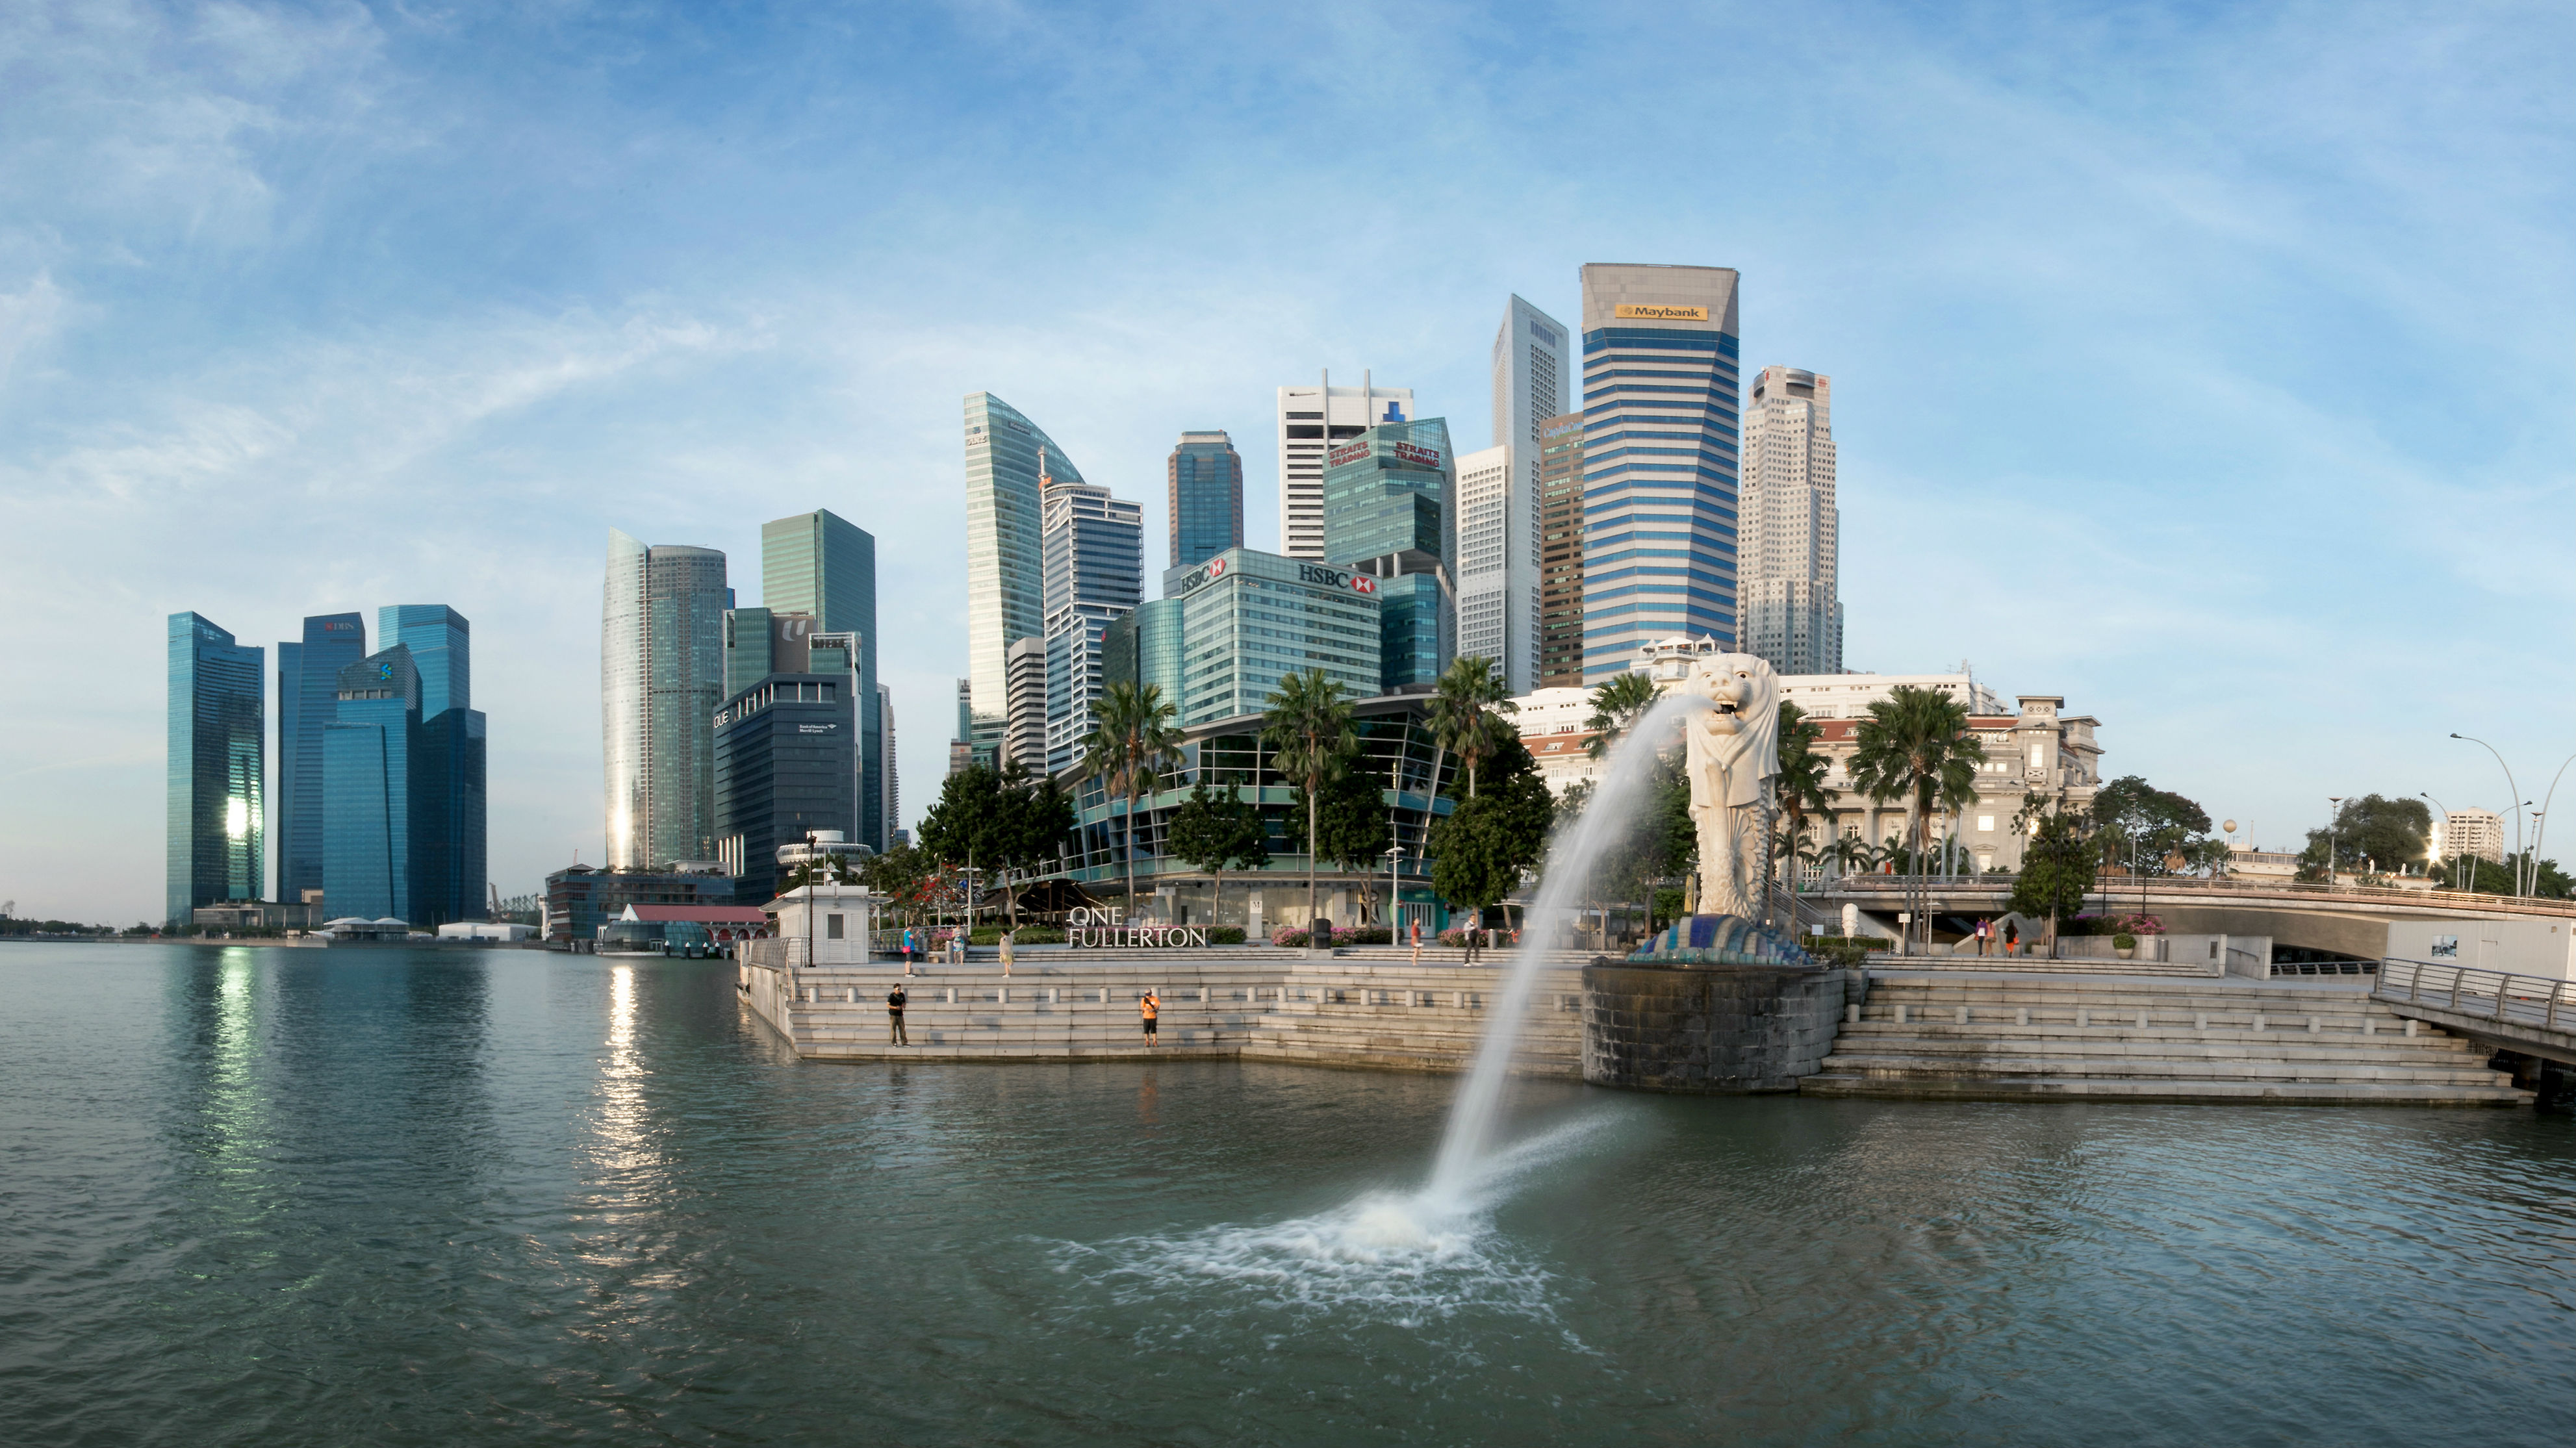 Merlion  Singapore Skyline in the Background in the Day Landscape View